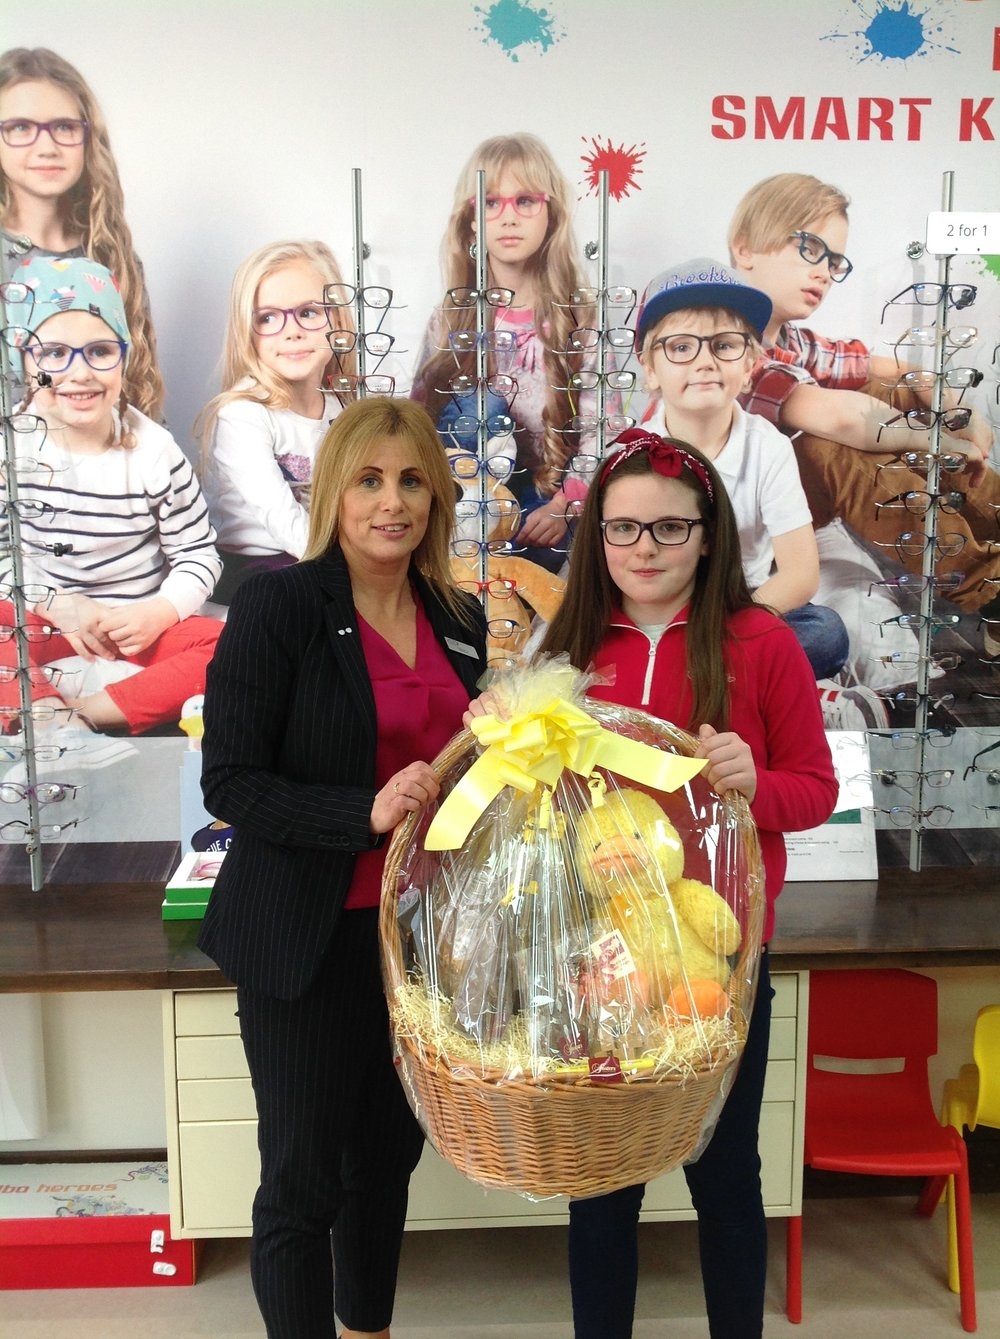 Congratulations to Caoimhe McCarthy who is the winner of our fabulous Easter hamper!Happy Easter to all our customers and keep an out here for more great competitions! - Happy Easter to all our customers and keep an out here for more great competitions!